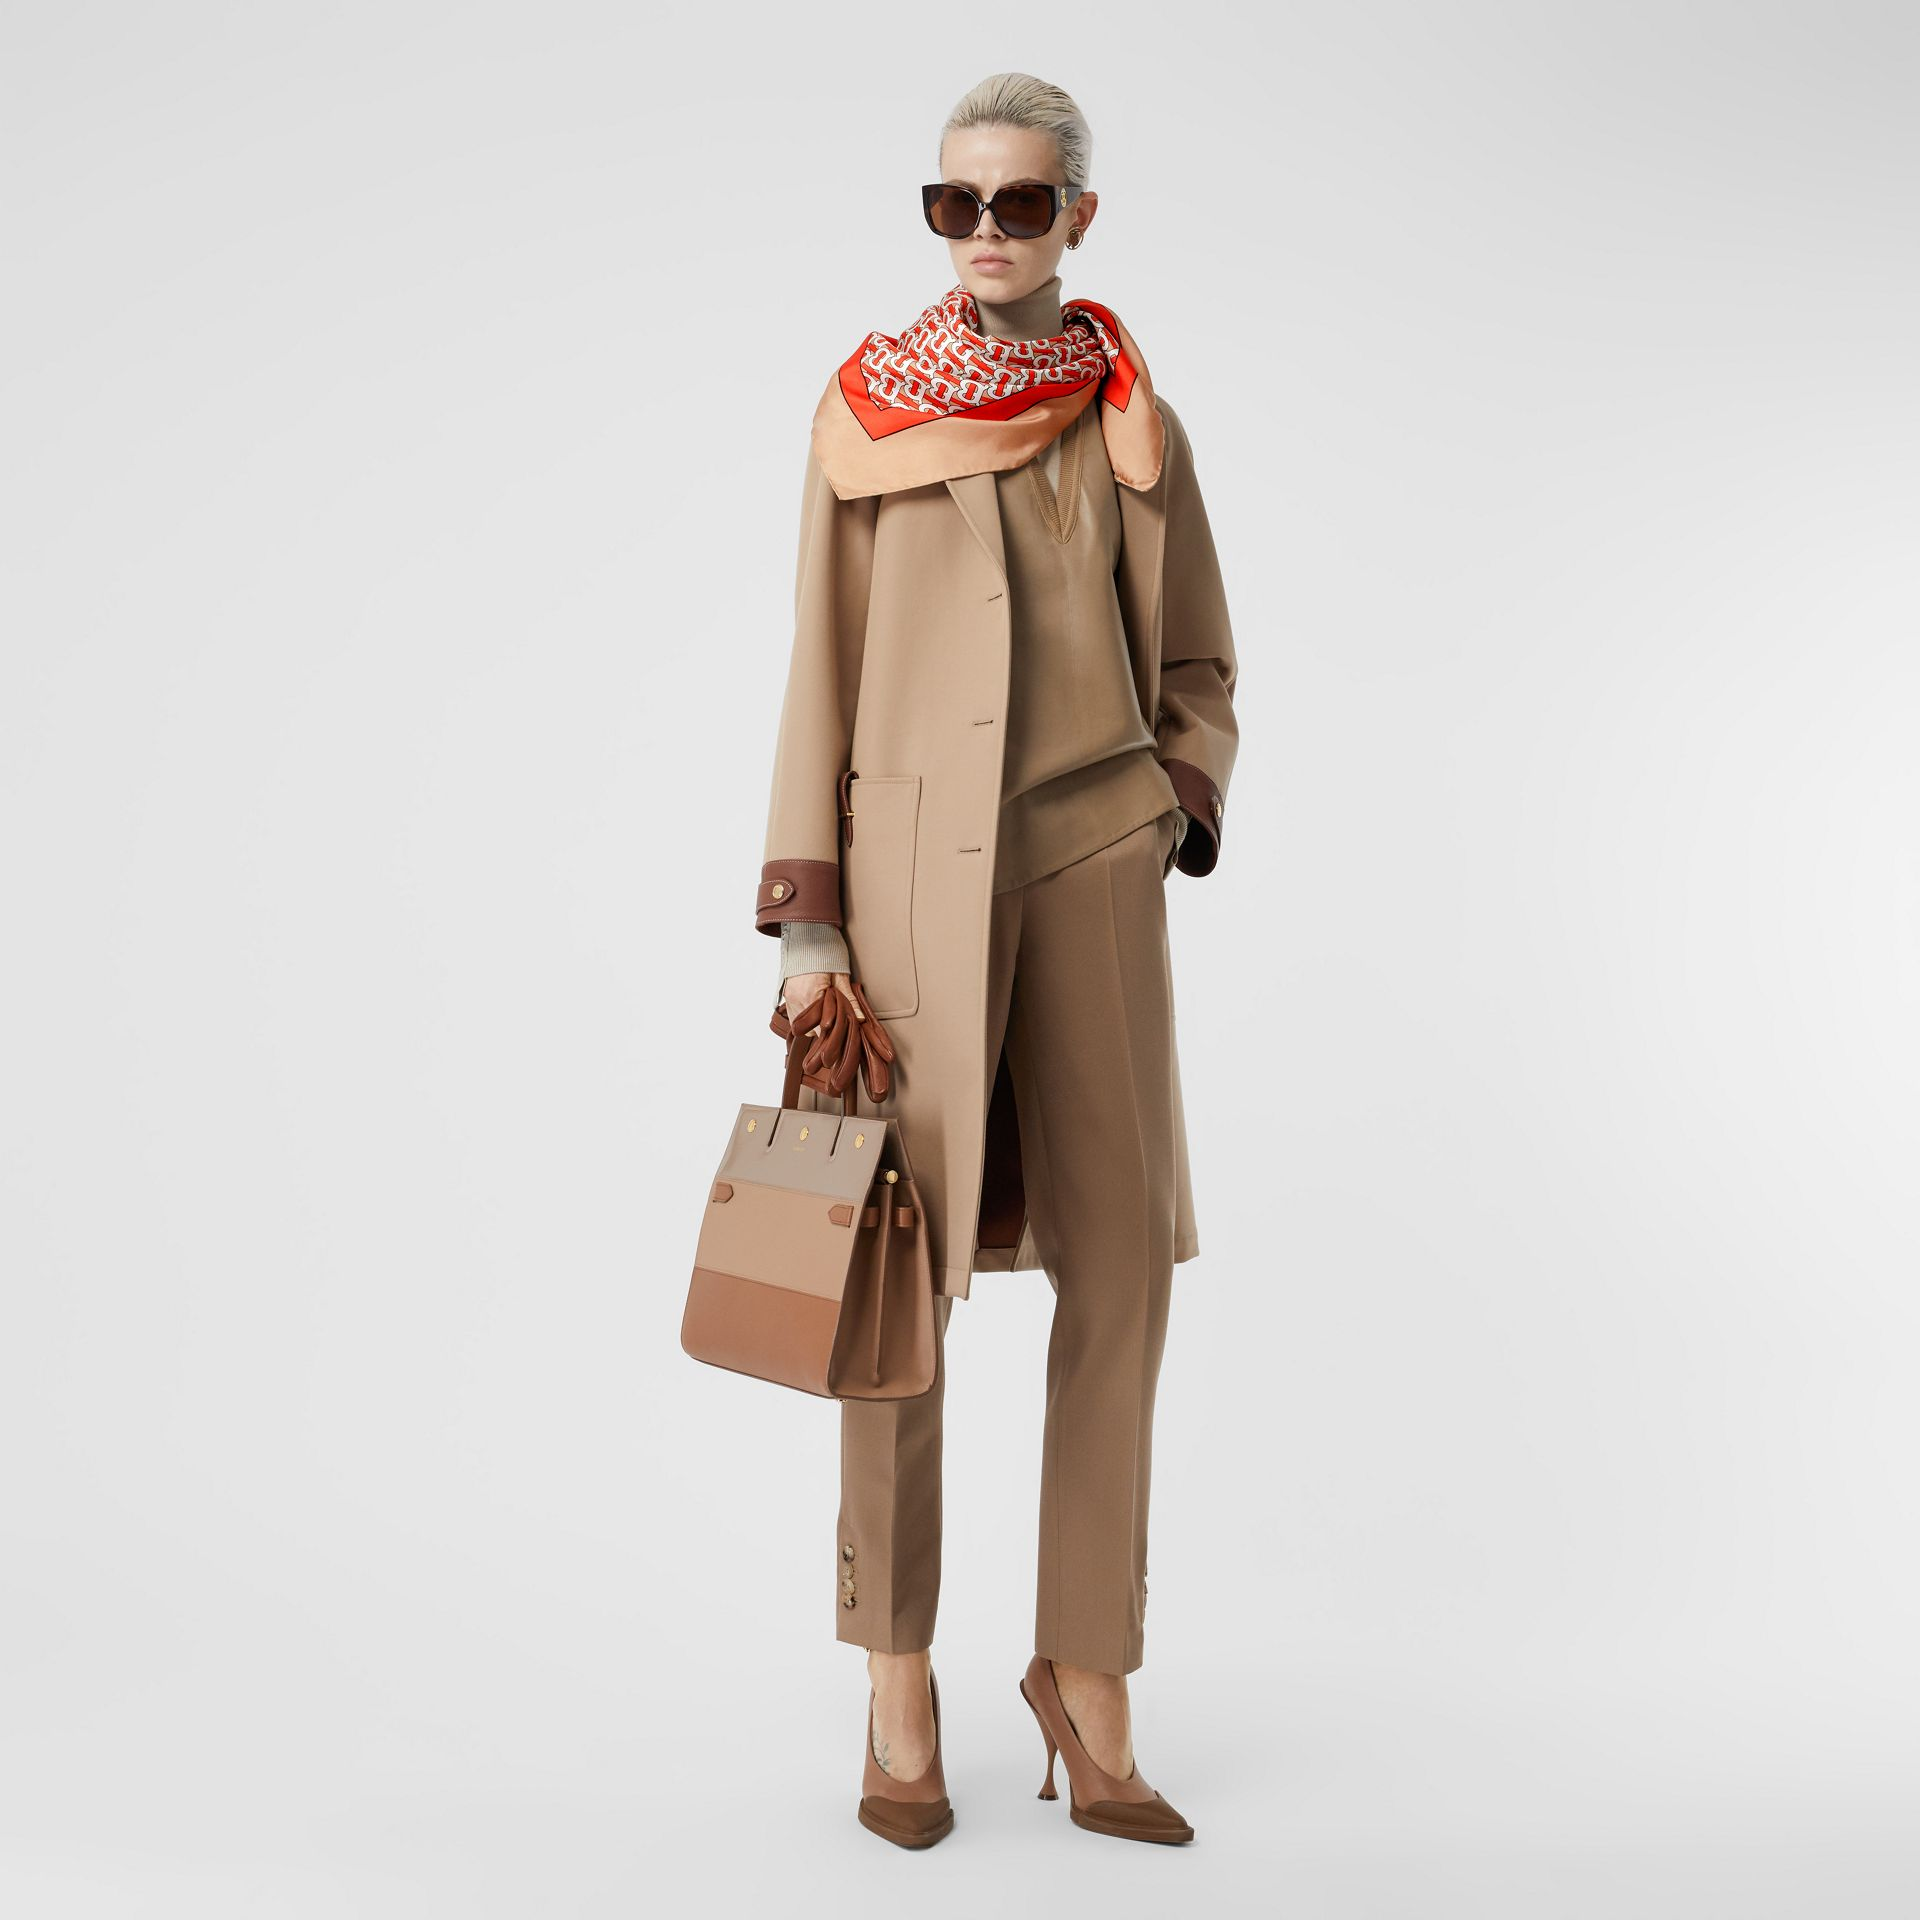 Monogram Print Silk Square Scarf in Vermilion - Women | Burberry - gallery image 5